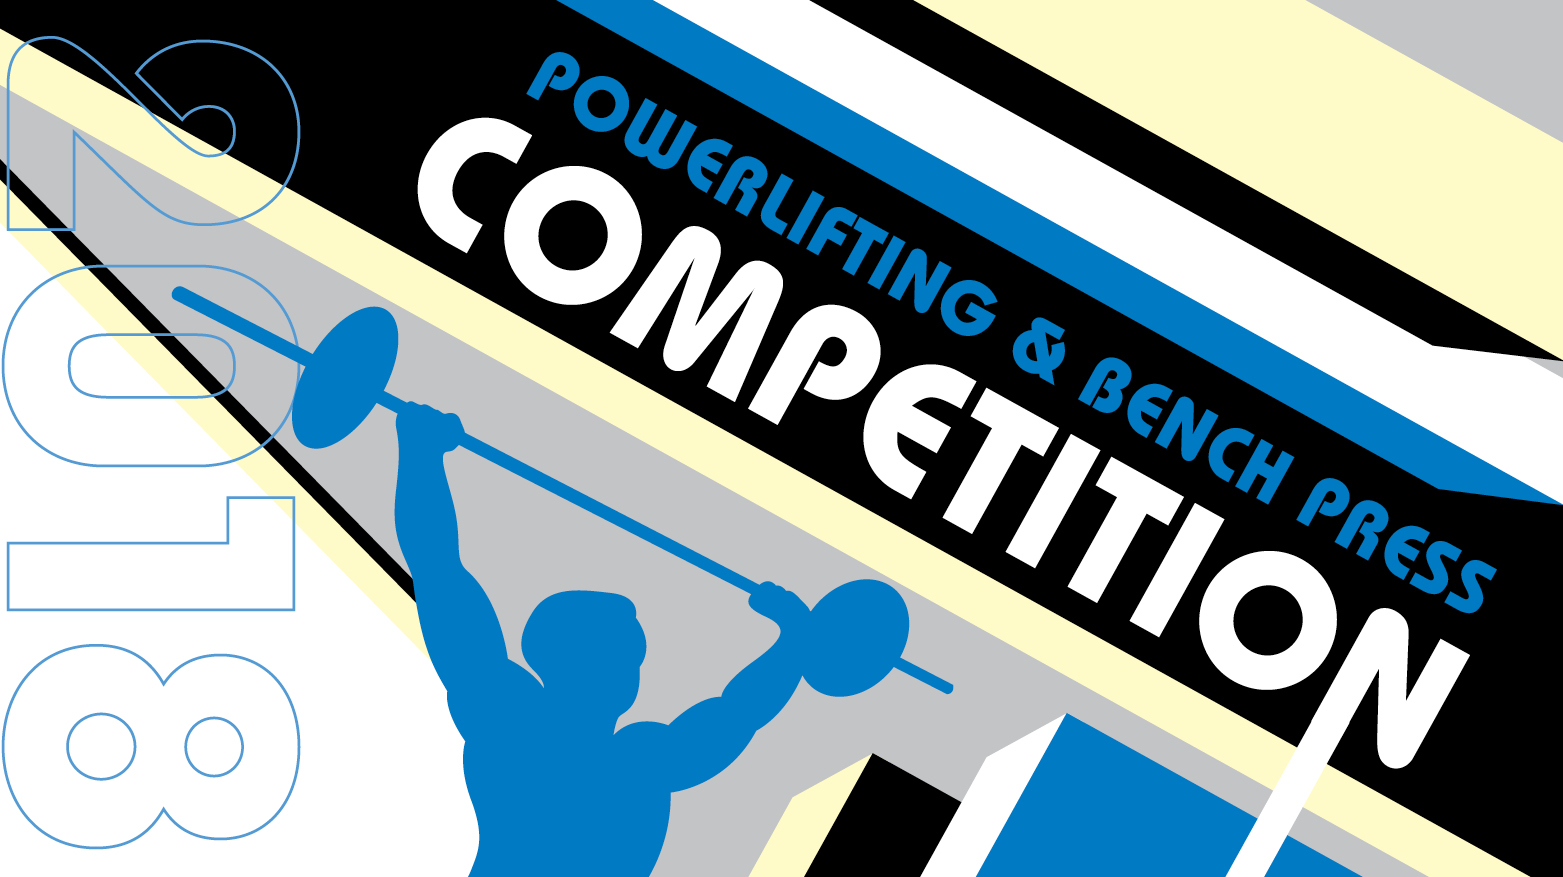 Powerlifting & Bench Press Competition